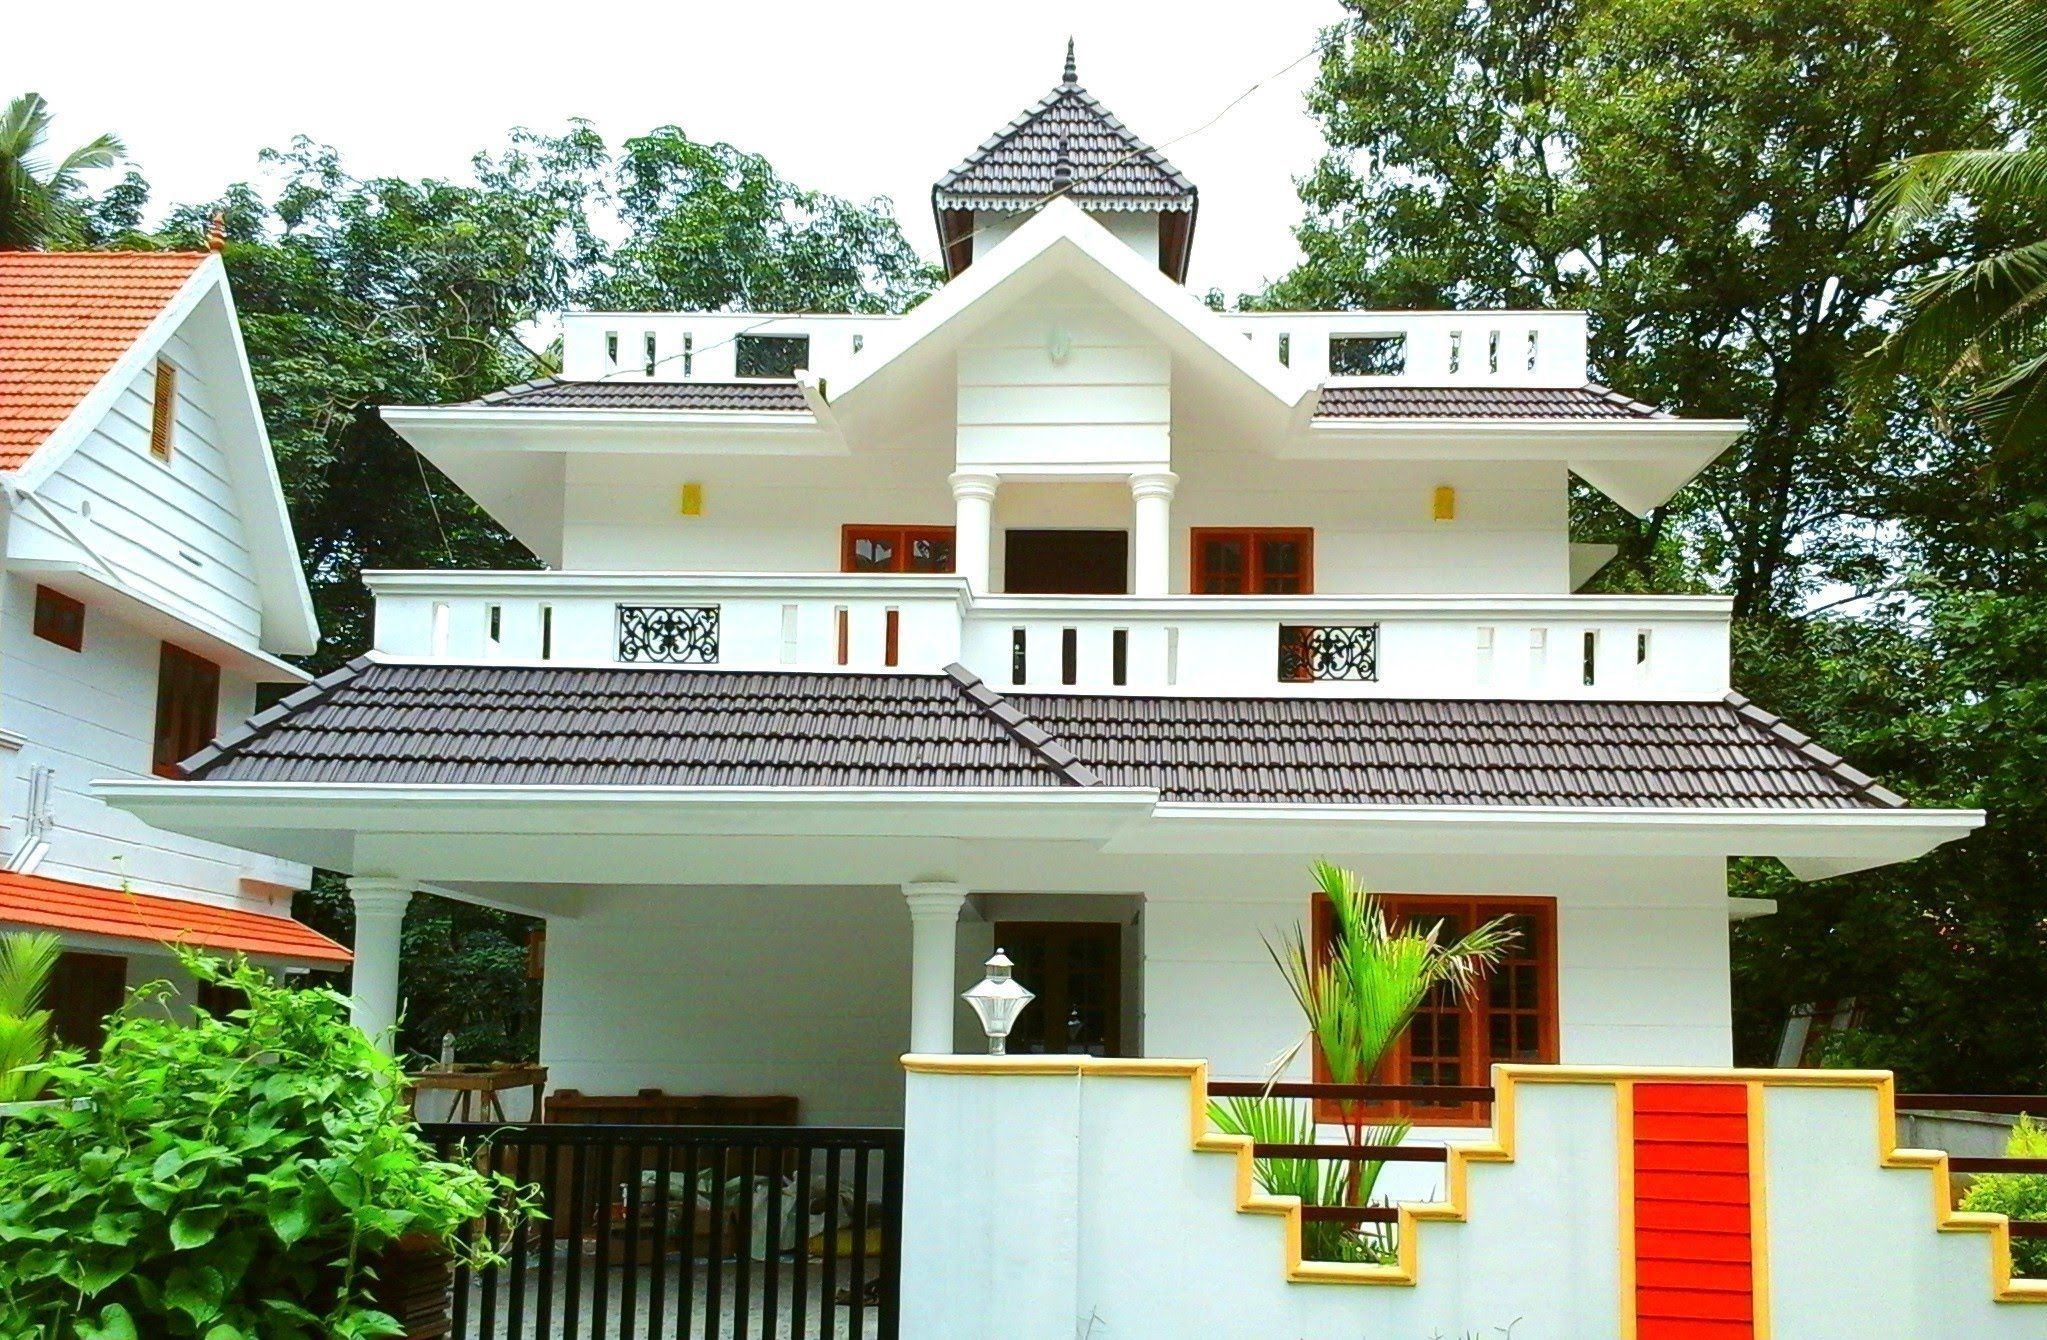 1,700 Sq Ft, Medium Budget House For Sale In Angamaly, Kochi, Kerala Part 95